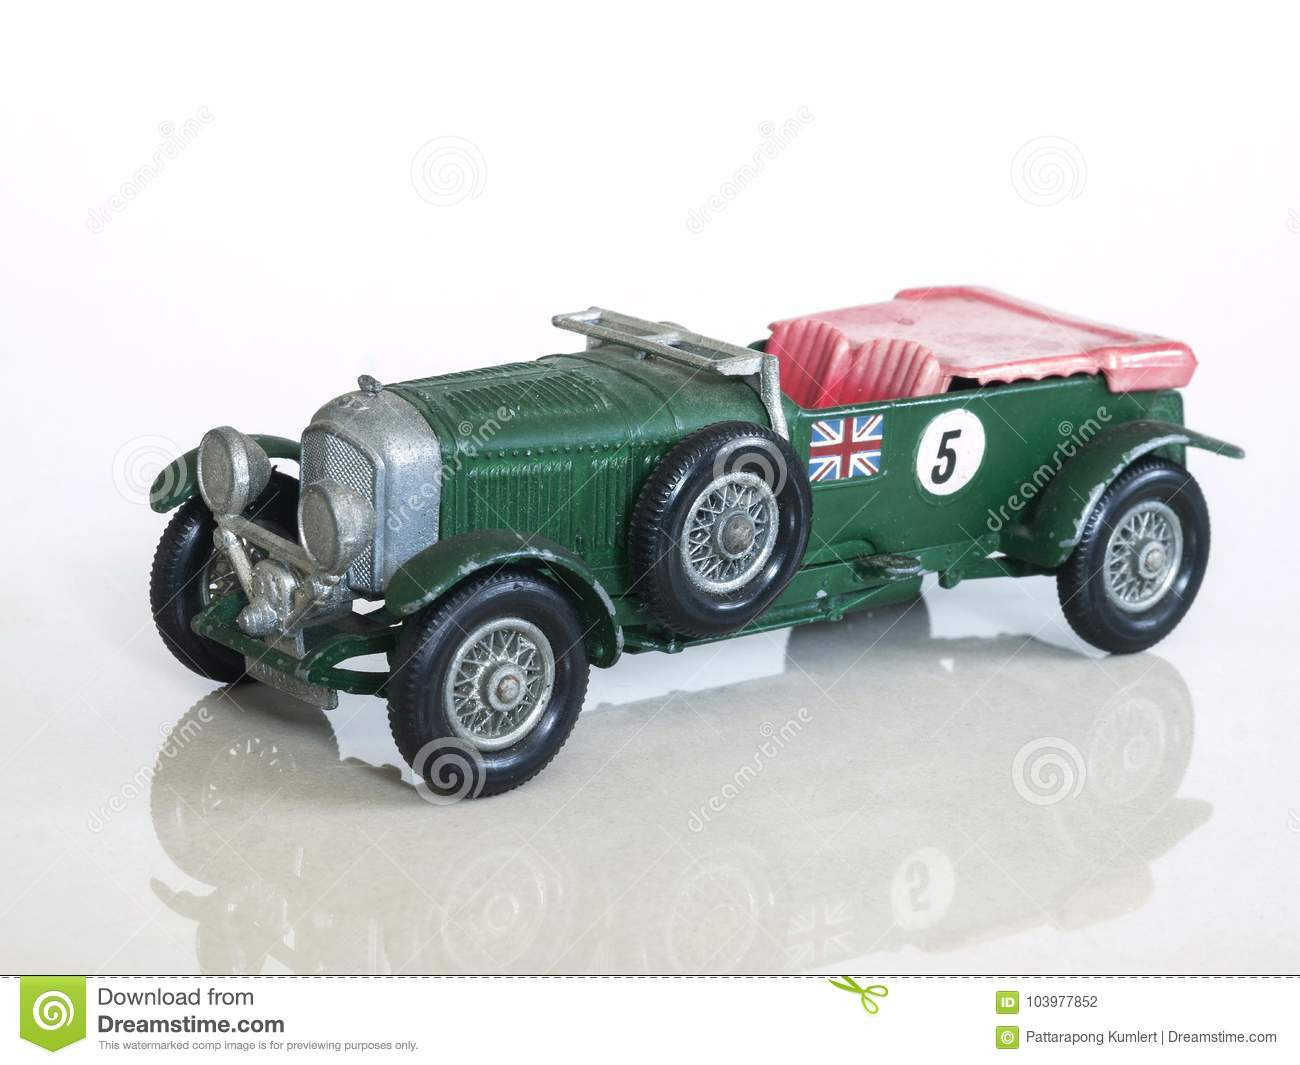 Vintage racing car toy , Bentley 4½ Litre British sports car toy model